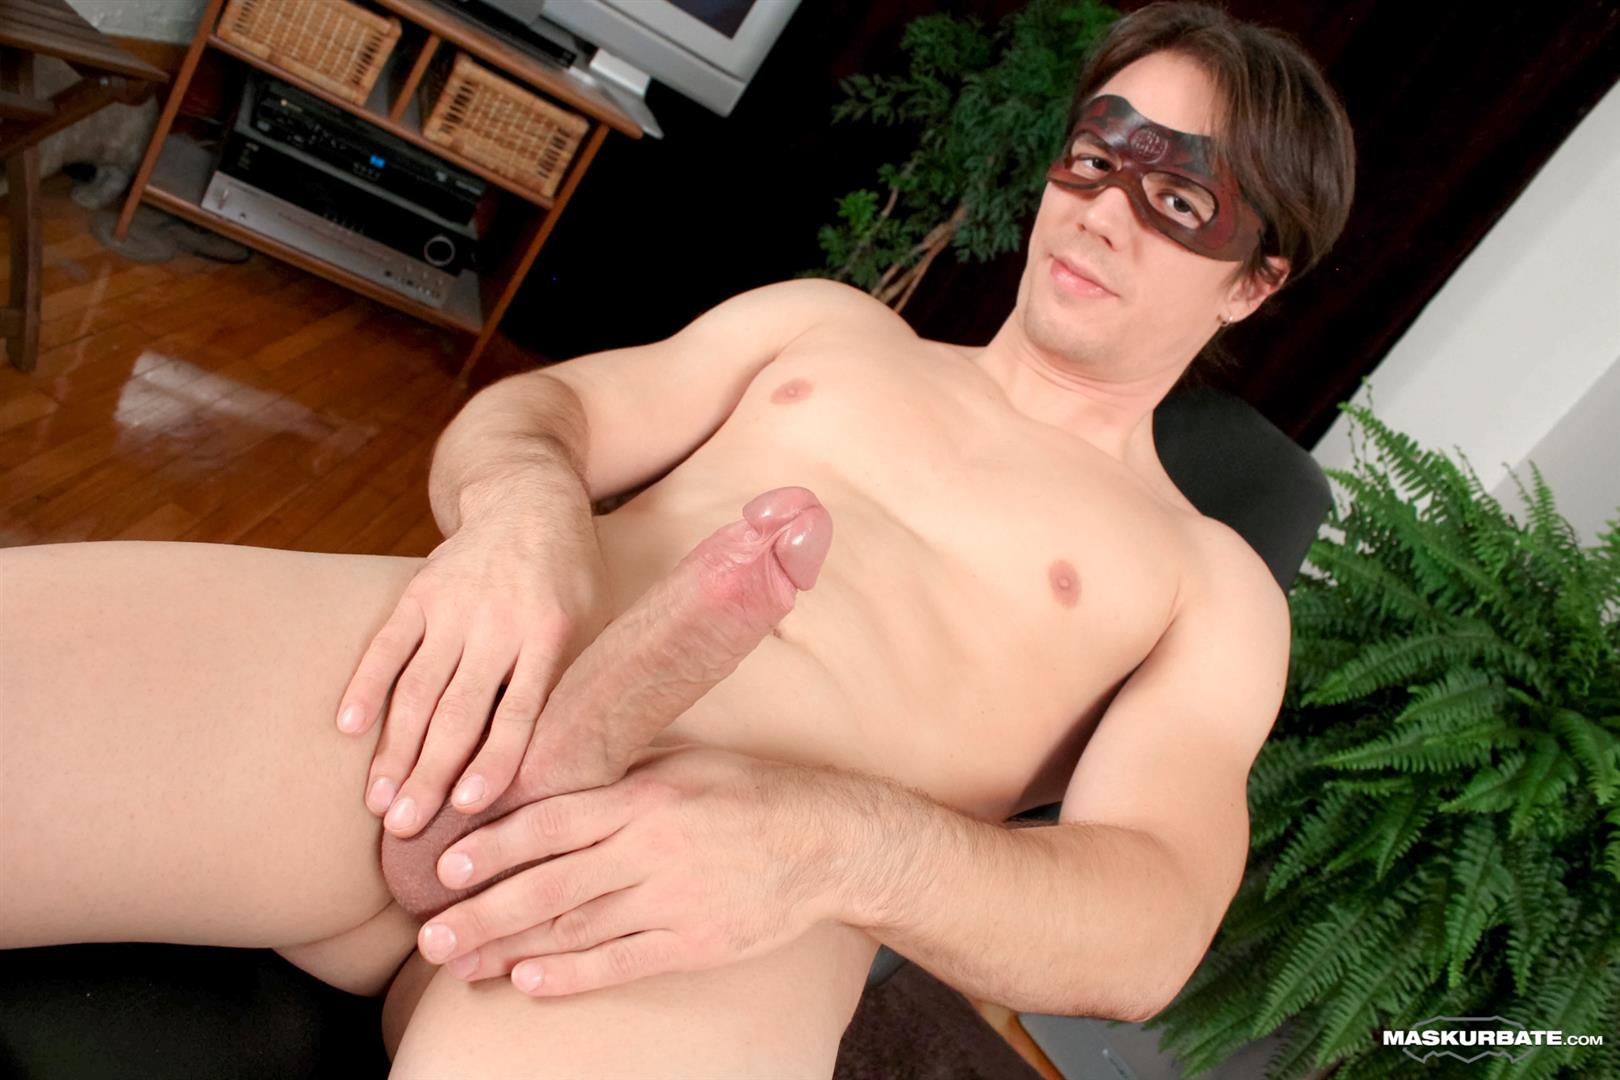 Maskurbate-Ricky-Big-Uncut-Cock-Jerk-Off-Anonymous-Amateur-Gay-Porn-13 Maskurbate Hunk Ricky Jerking Off His Huge Uncut Cock